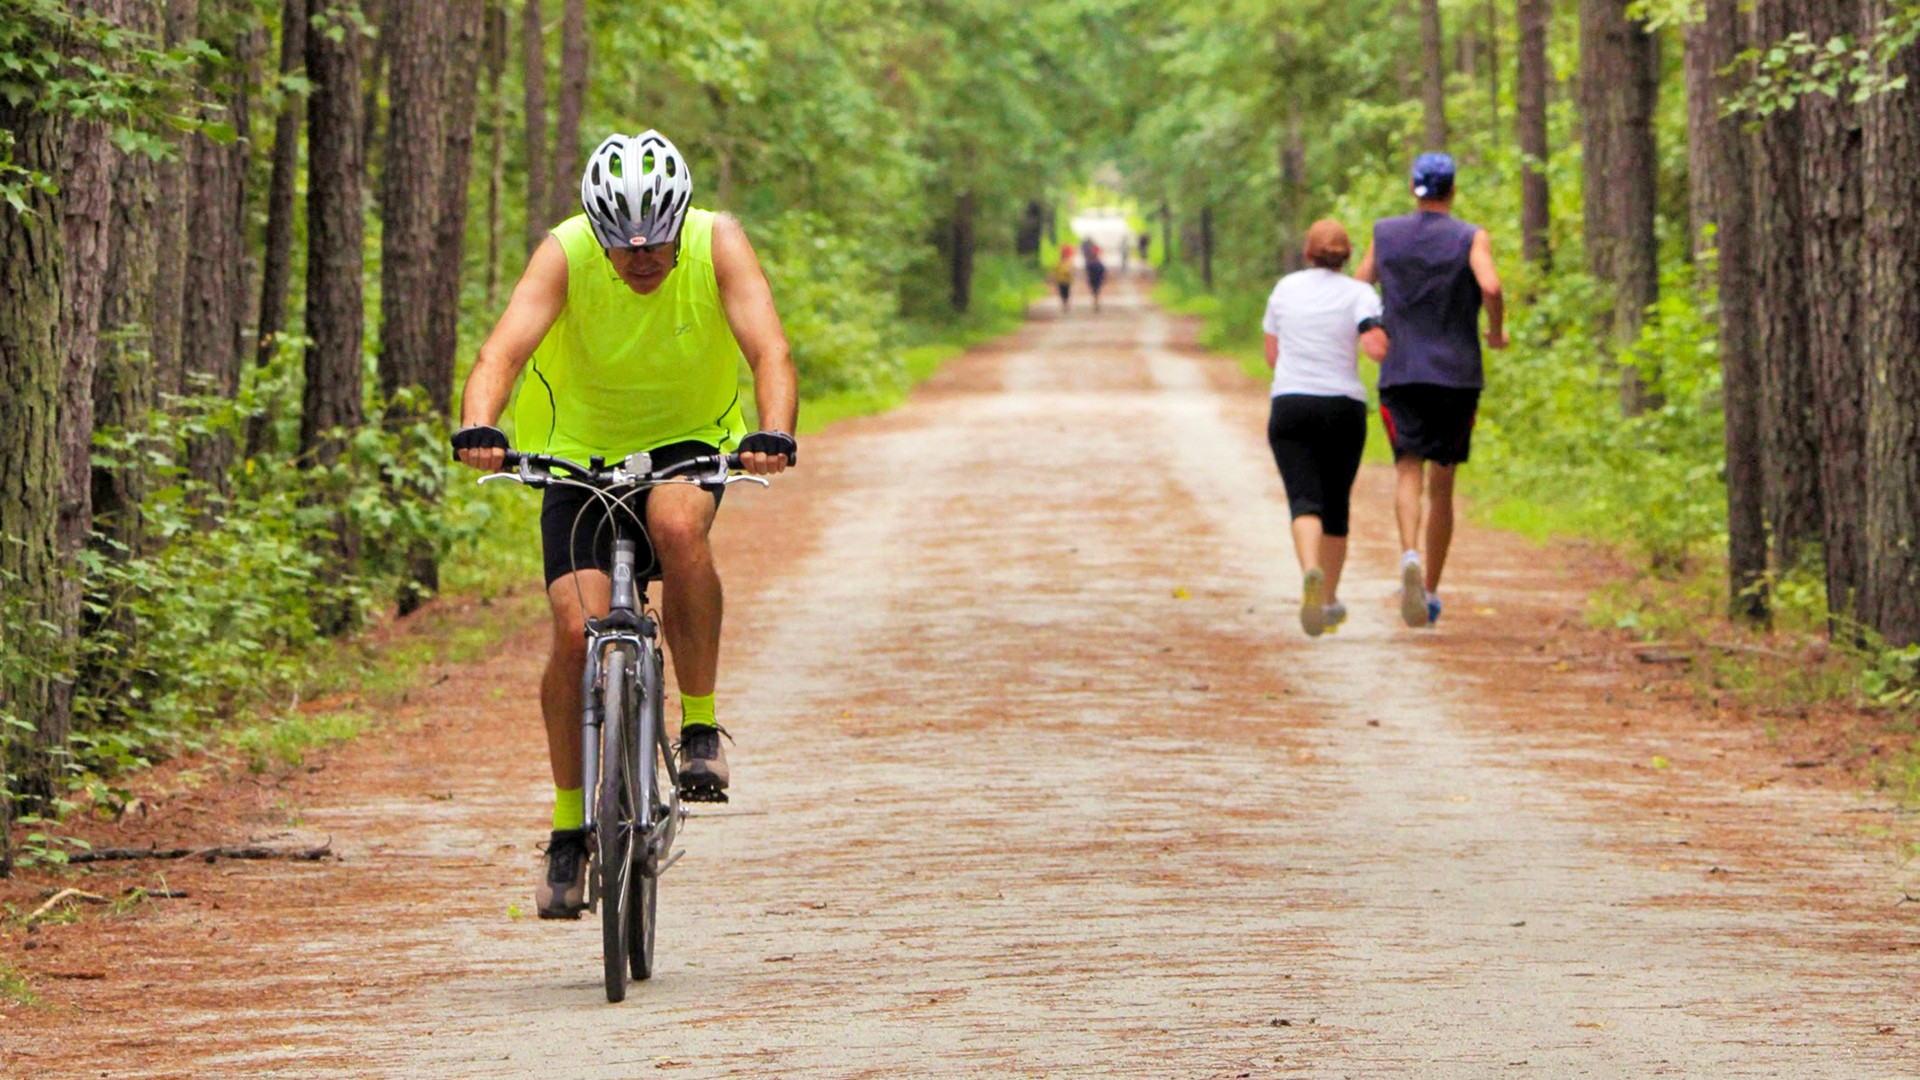 Man biking with two joggers on trail